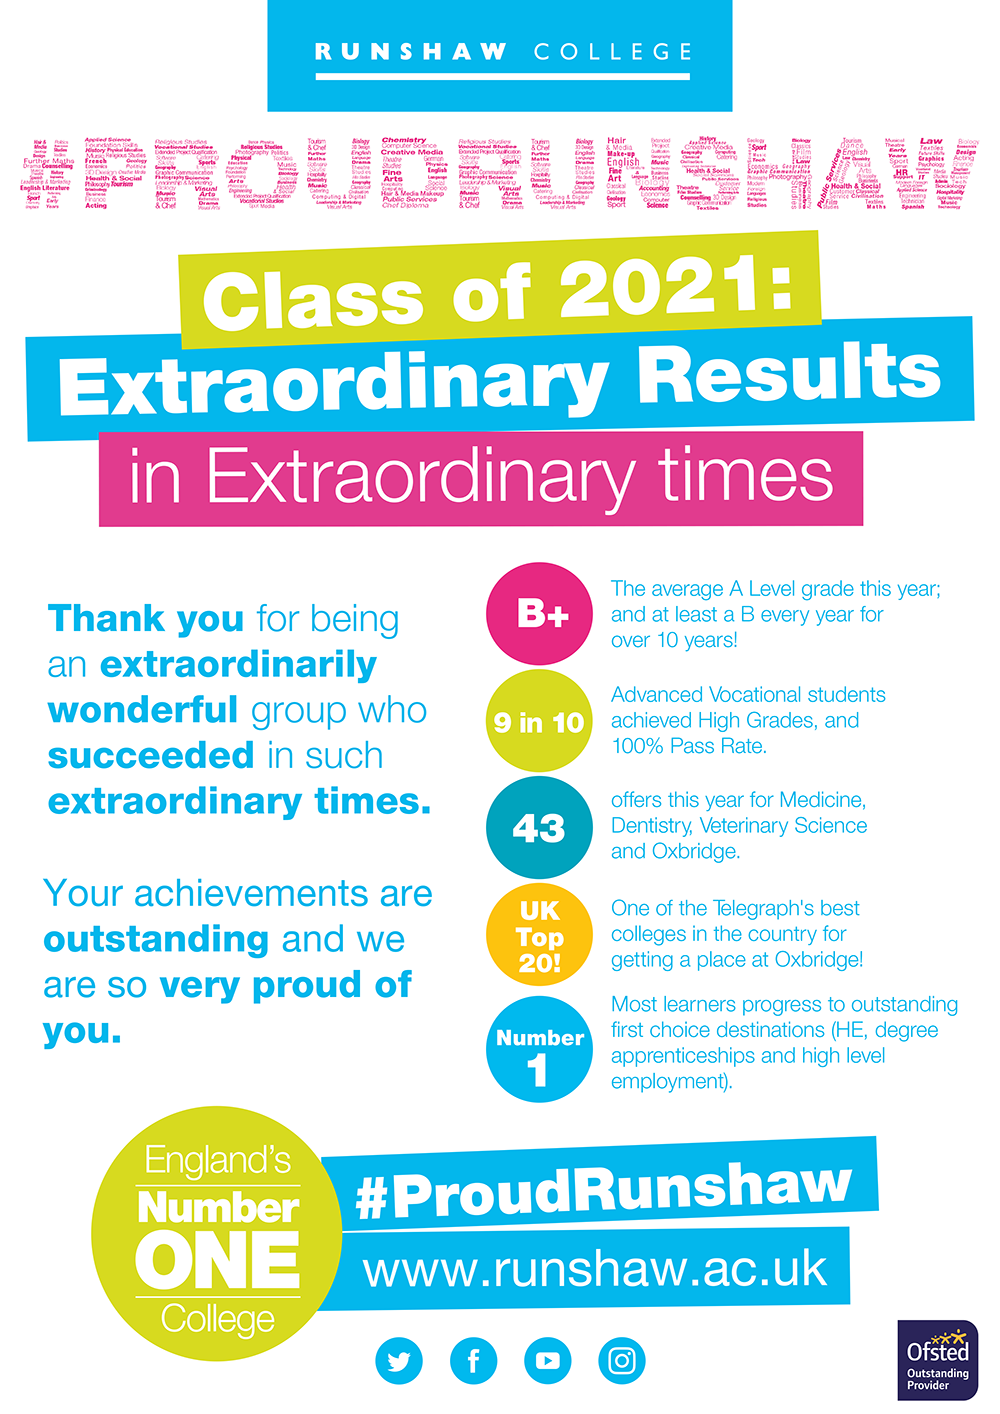 Class of 2021: Extraordinary Results in Extraordinary Times